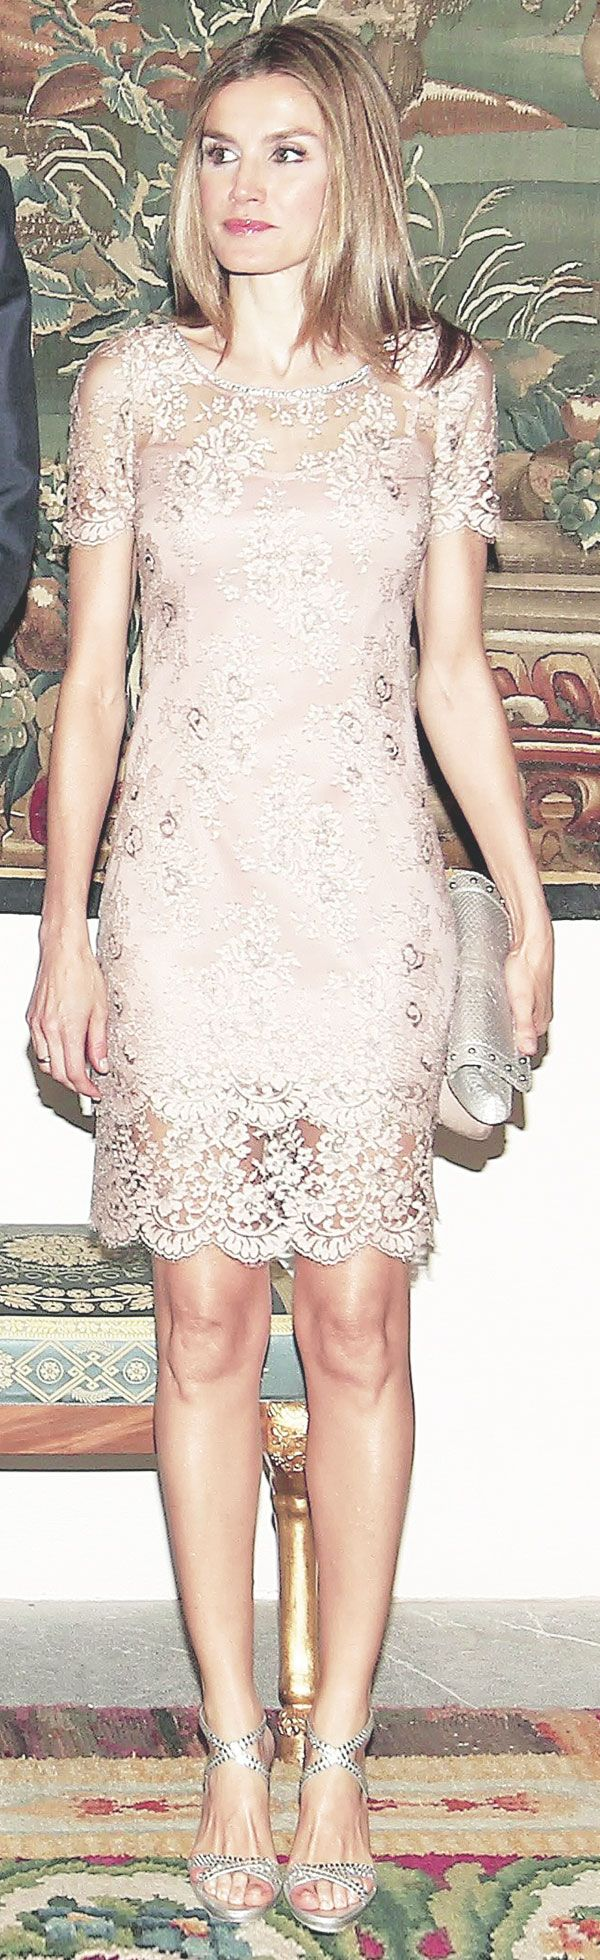 Letizia, Princess of Asturias wore a FELIPE VARELA lace dress and Magrit sandals at the Palace of the Almudaina for the traditional dinner with the authorities of the Balearic Islands as part of the summer holidays of the royal family in Palma de Mallorca. 10/8/2012